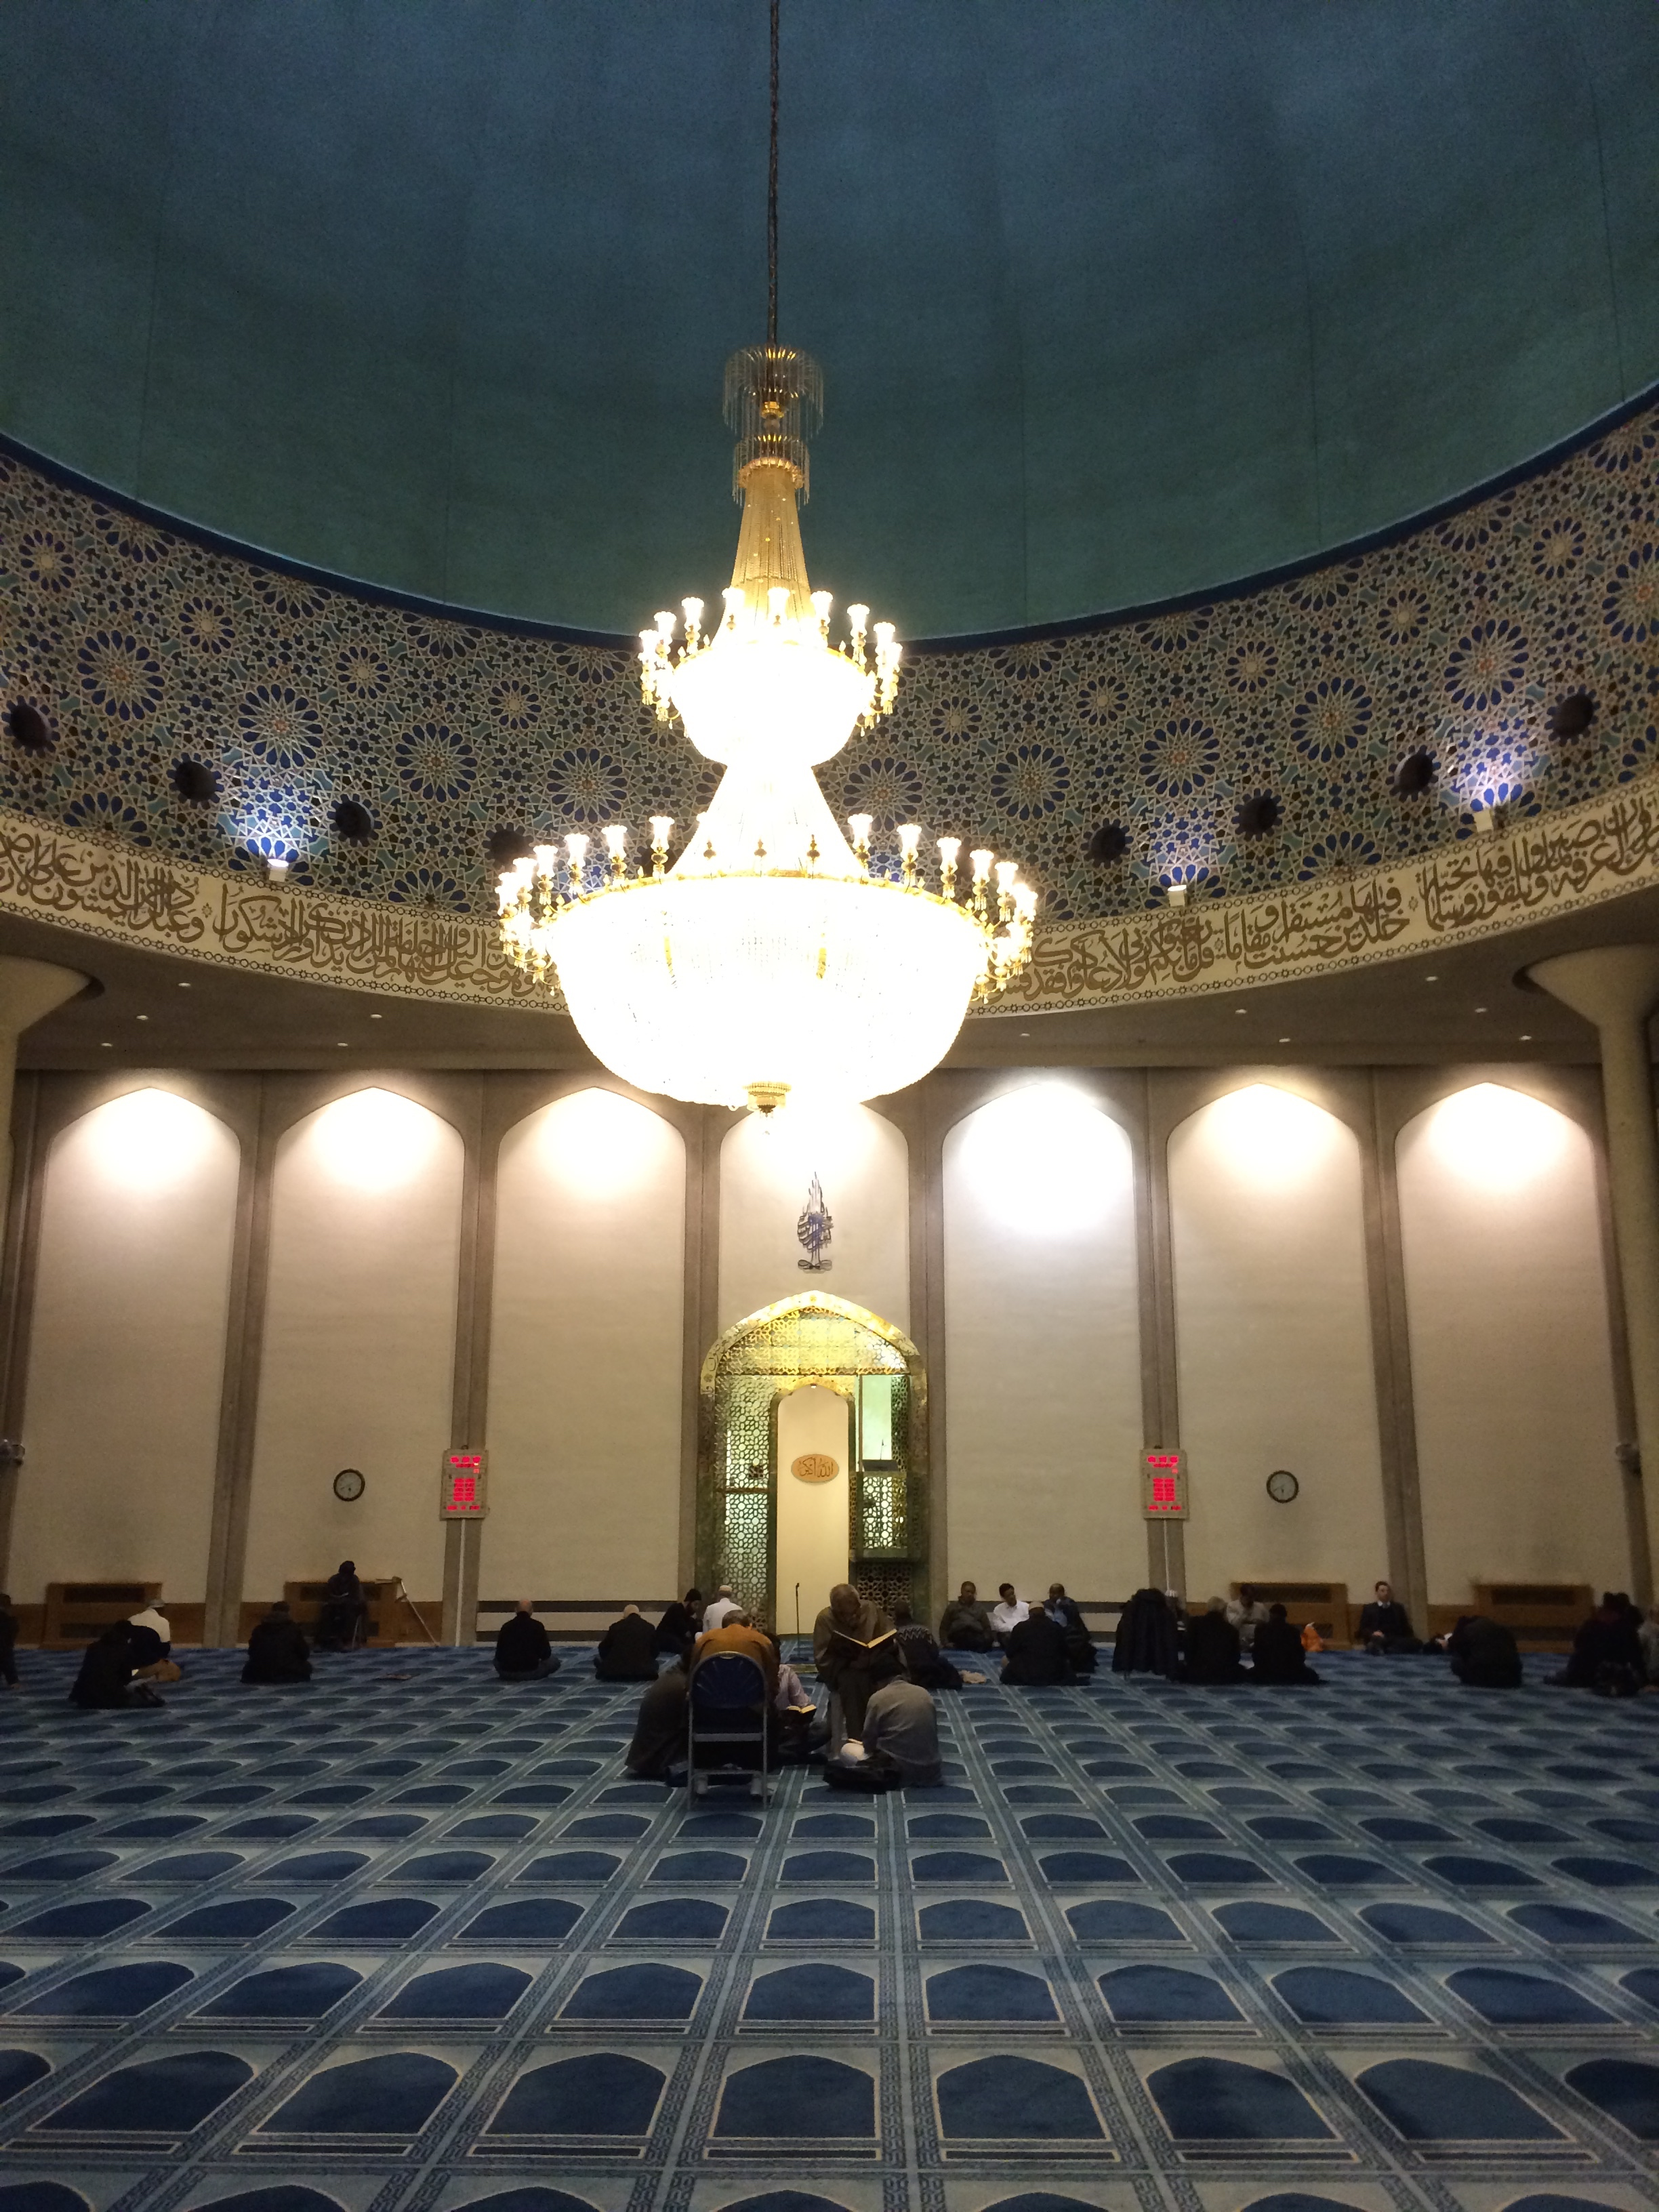 Waiting for Isha prayer earlier this evening – Blogging Theology